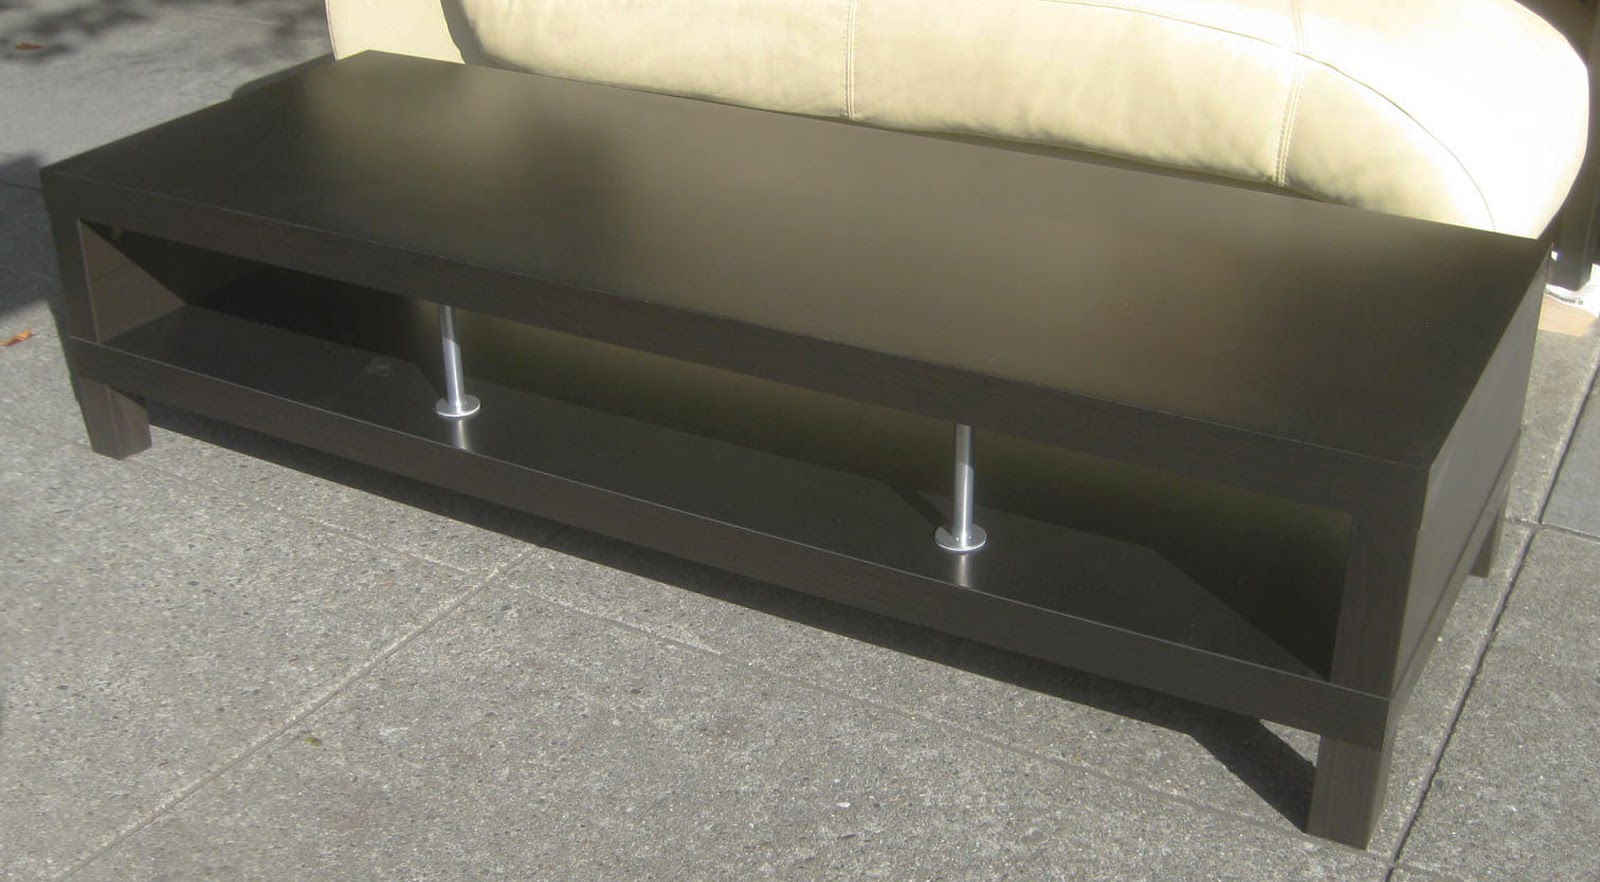 UHURU FURNITURE & COLLECTIBLES: SOLD - Black Ikea Coffee Table